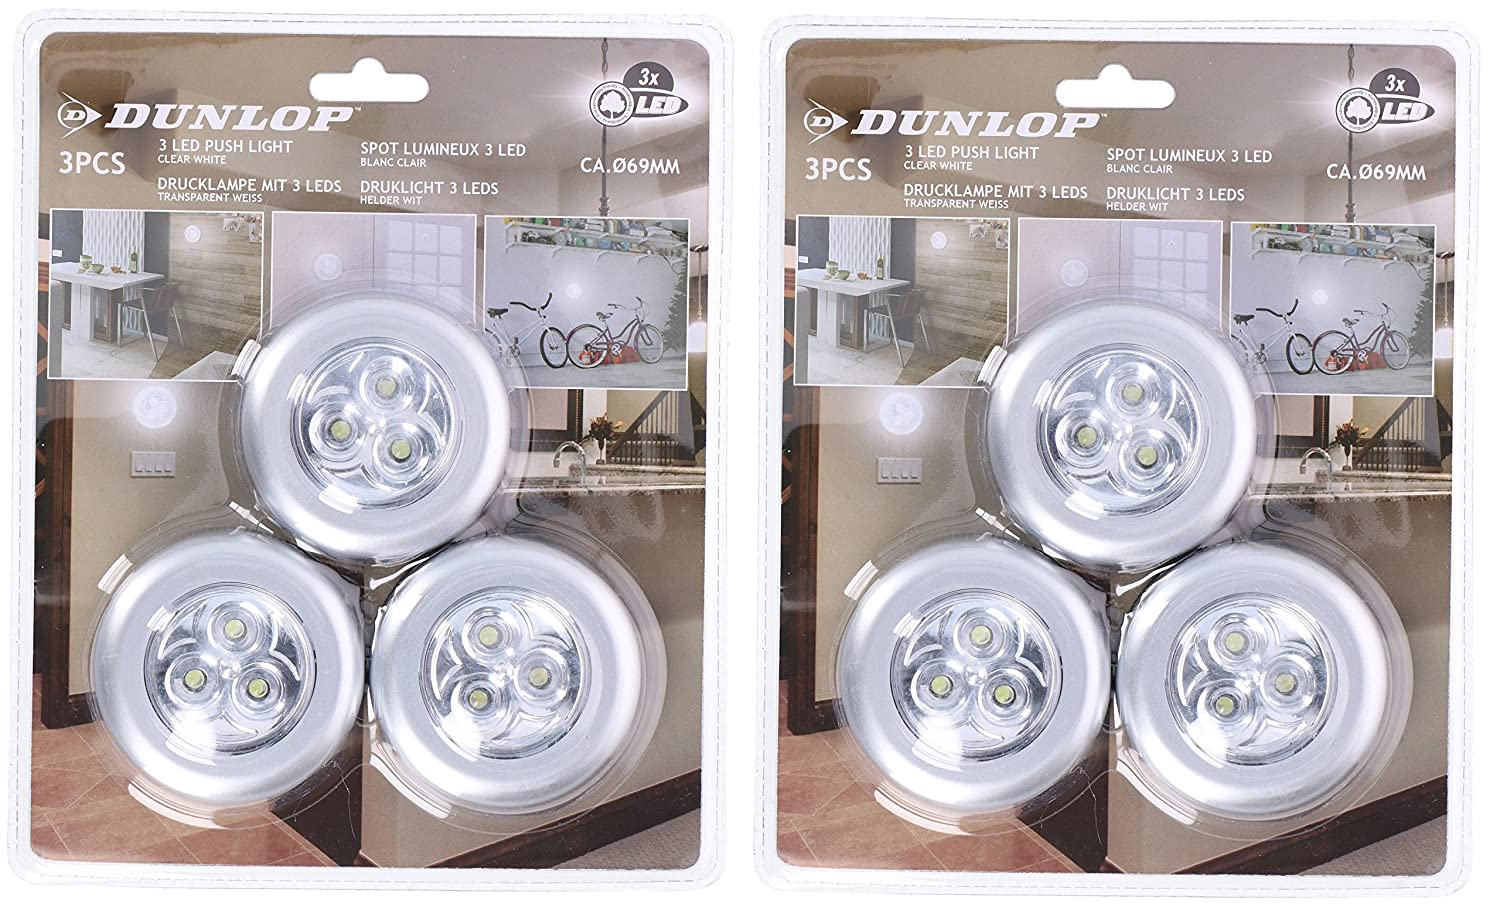 Dunlop Pack of 3 Battery Operated Kitchen Cabinet Cupboard LED Push Light (2 x Pack of 3) EDCO